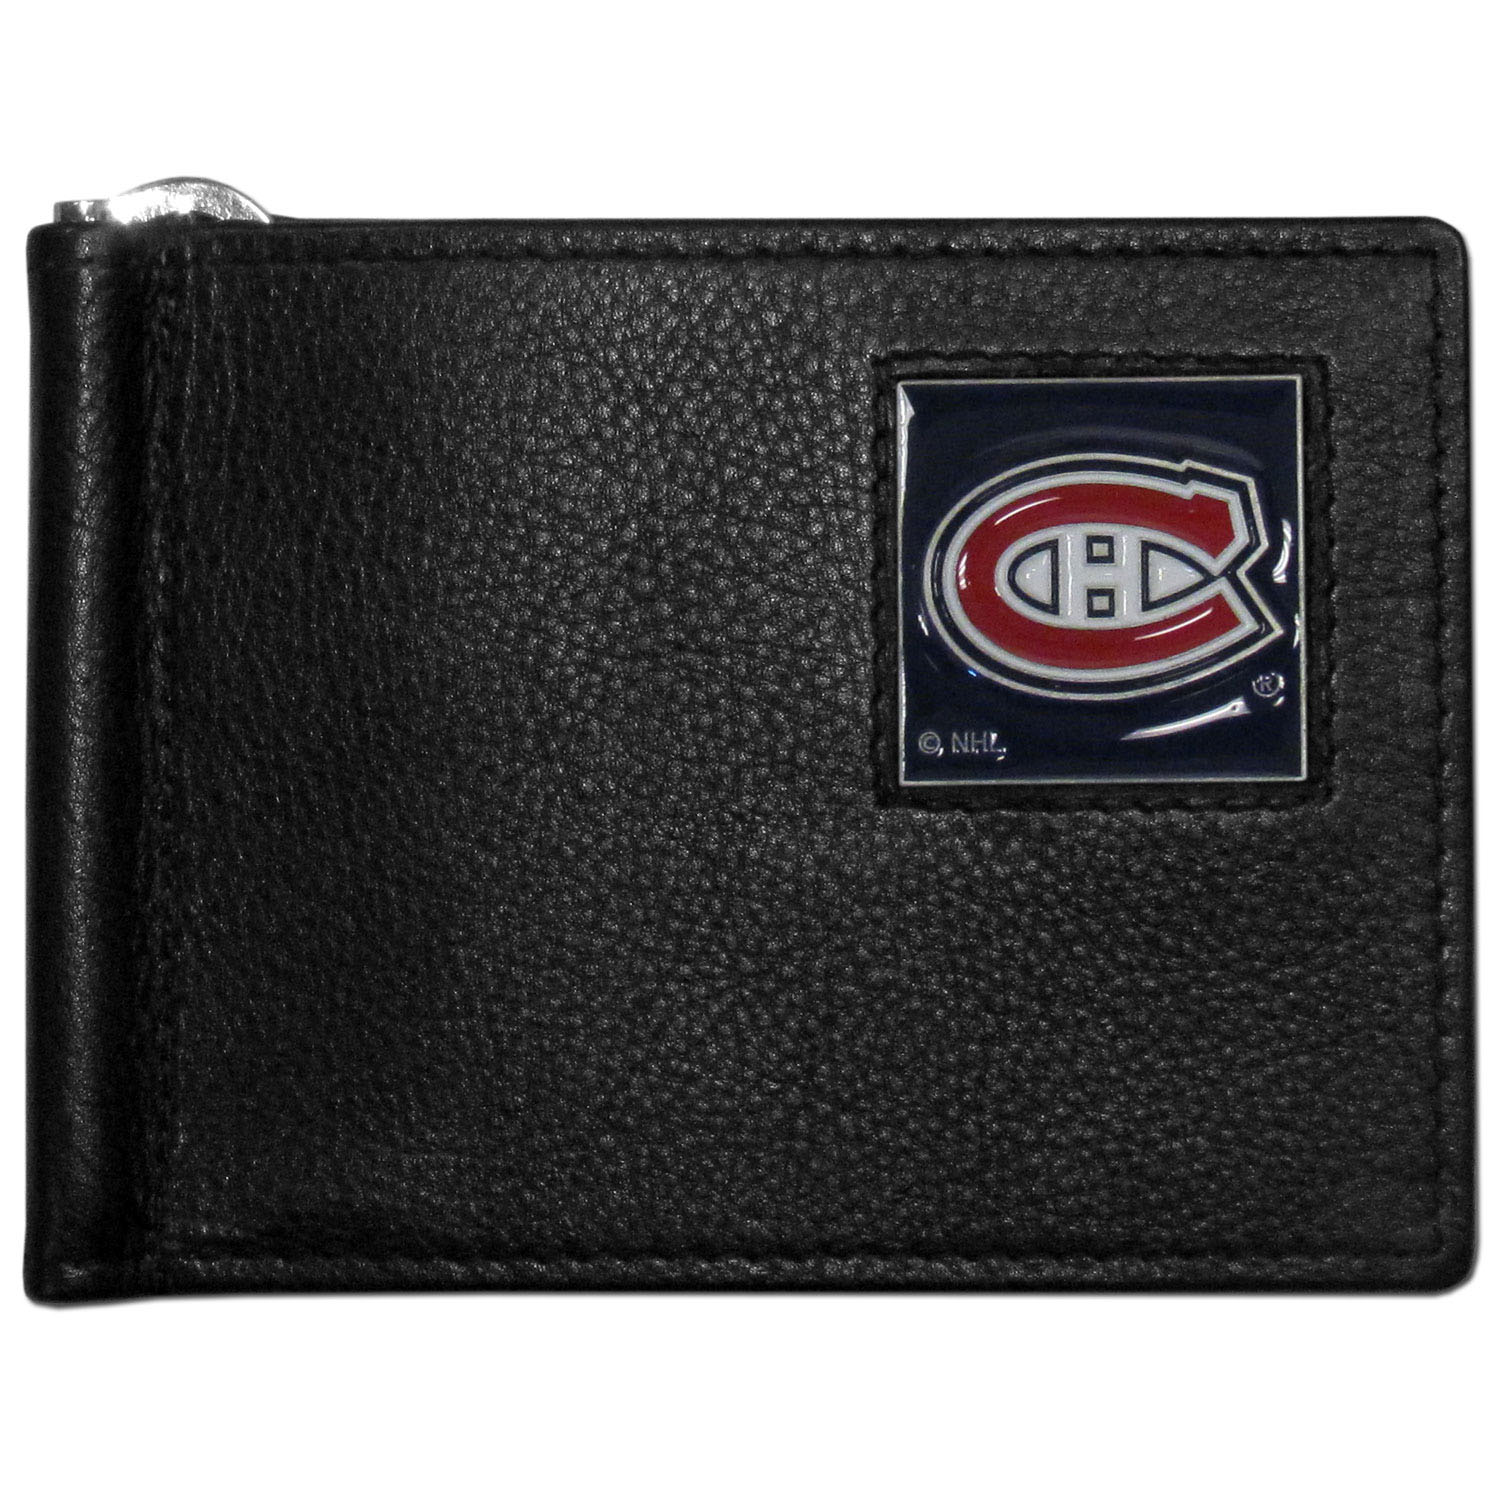 Montreal Canadiens® Leather Bill Clip Wallet - This cool new style wallet features an inner, metal bill clip that lips up for easy access. The super slim wallet holds tons of stuff with ample pockets, credit card slots & windowed ID slot.  The wallet is made of genuine fine grain leather and it finished with a metal Montreal Canadiens® emblem. The wallet is shipped in gift box packaging.